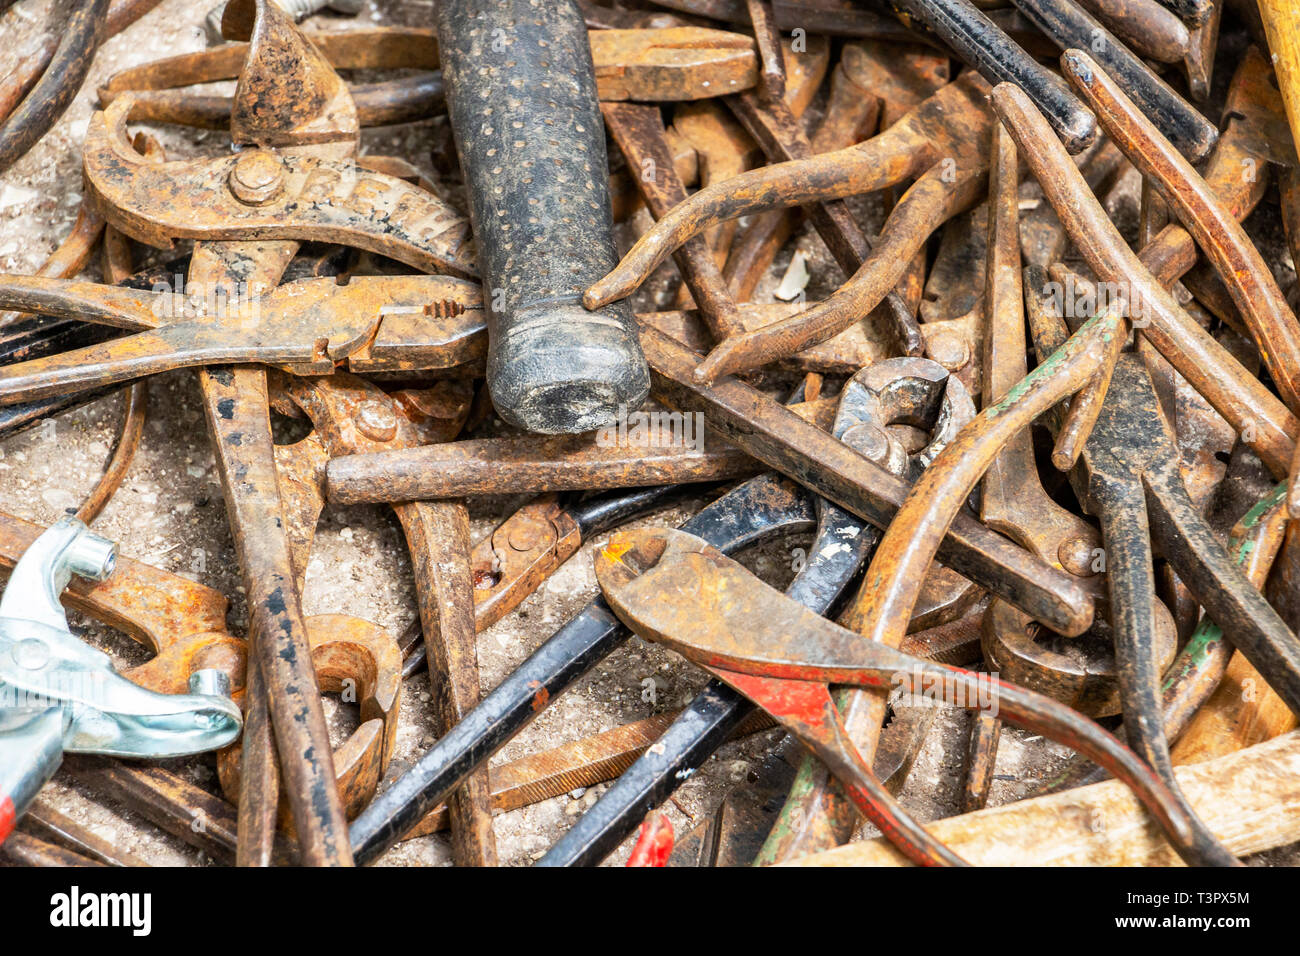 Disorderly scattered various pliers, hand tool texture background - Stock Image